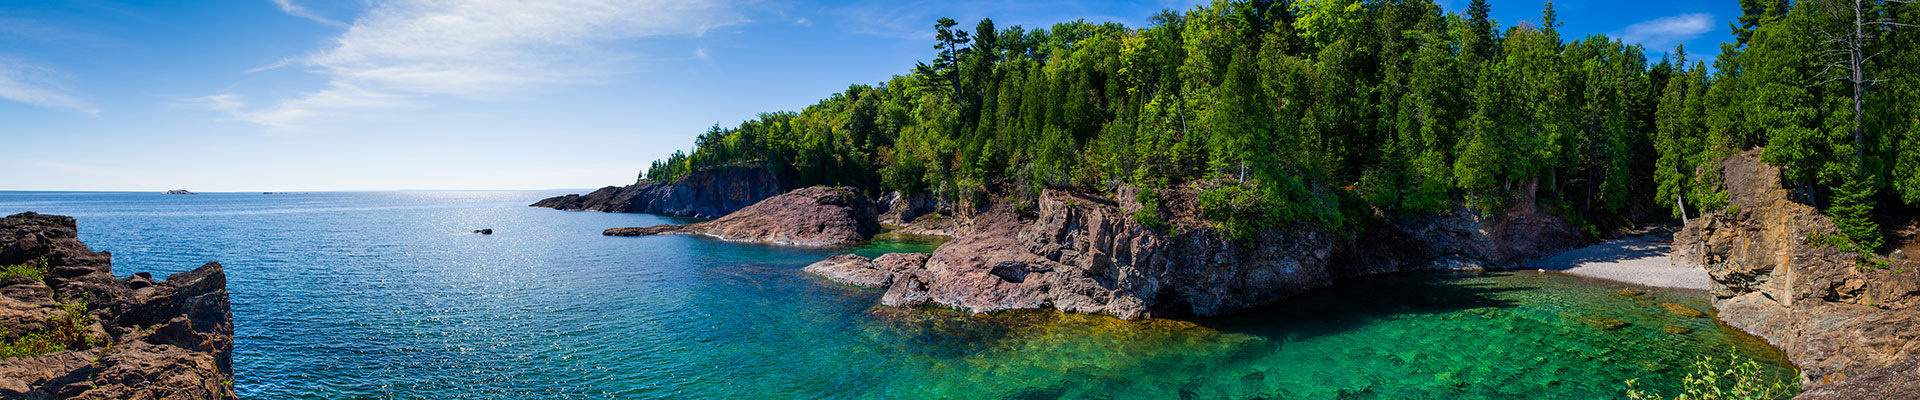 Fantasy RV Tours: 27 Day Great Lakes of North America (27UGLP-052319)